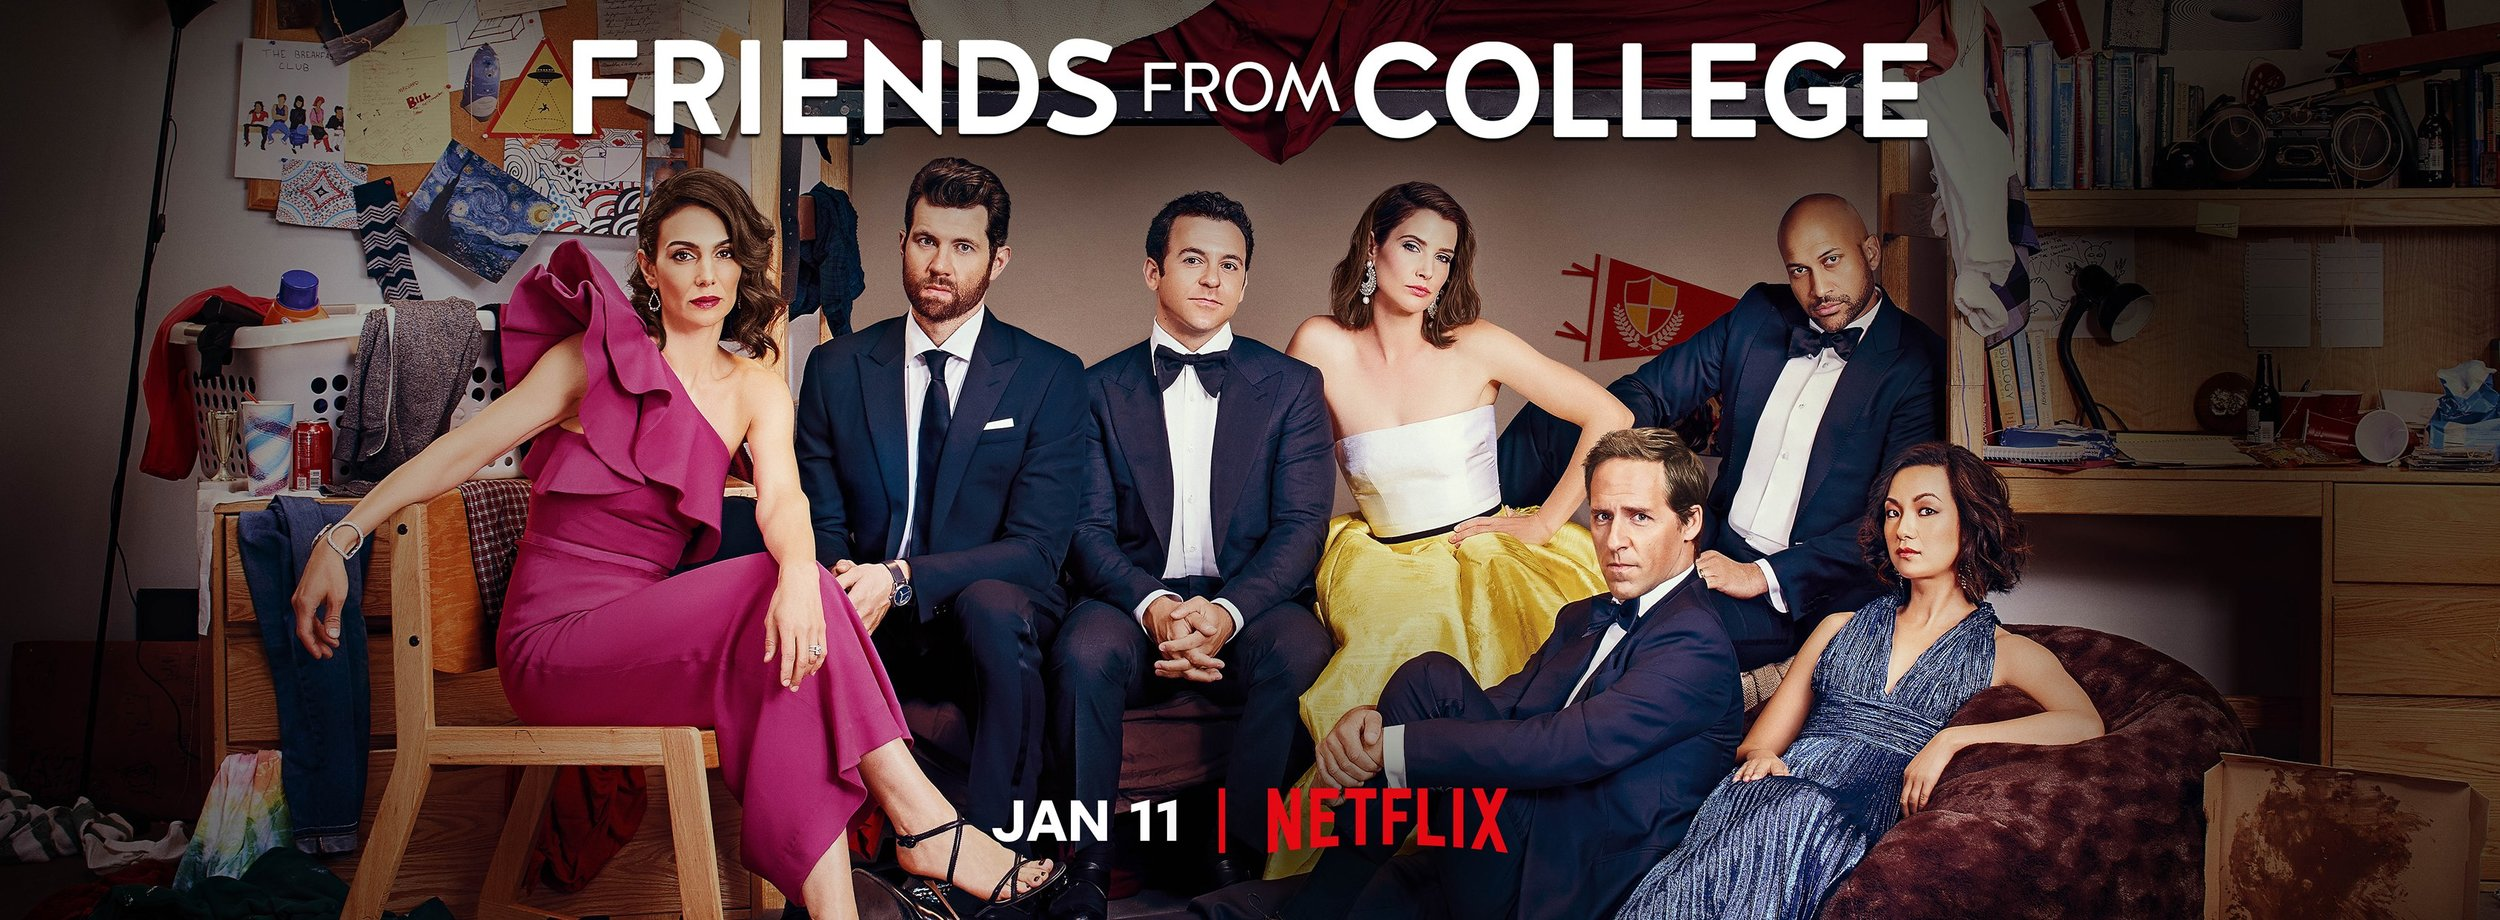 friends-from-college-season-2-viewer-votes-netflix.jpg